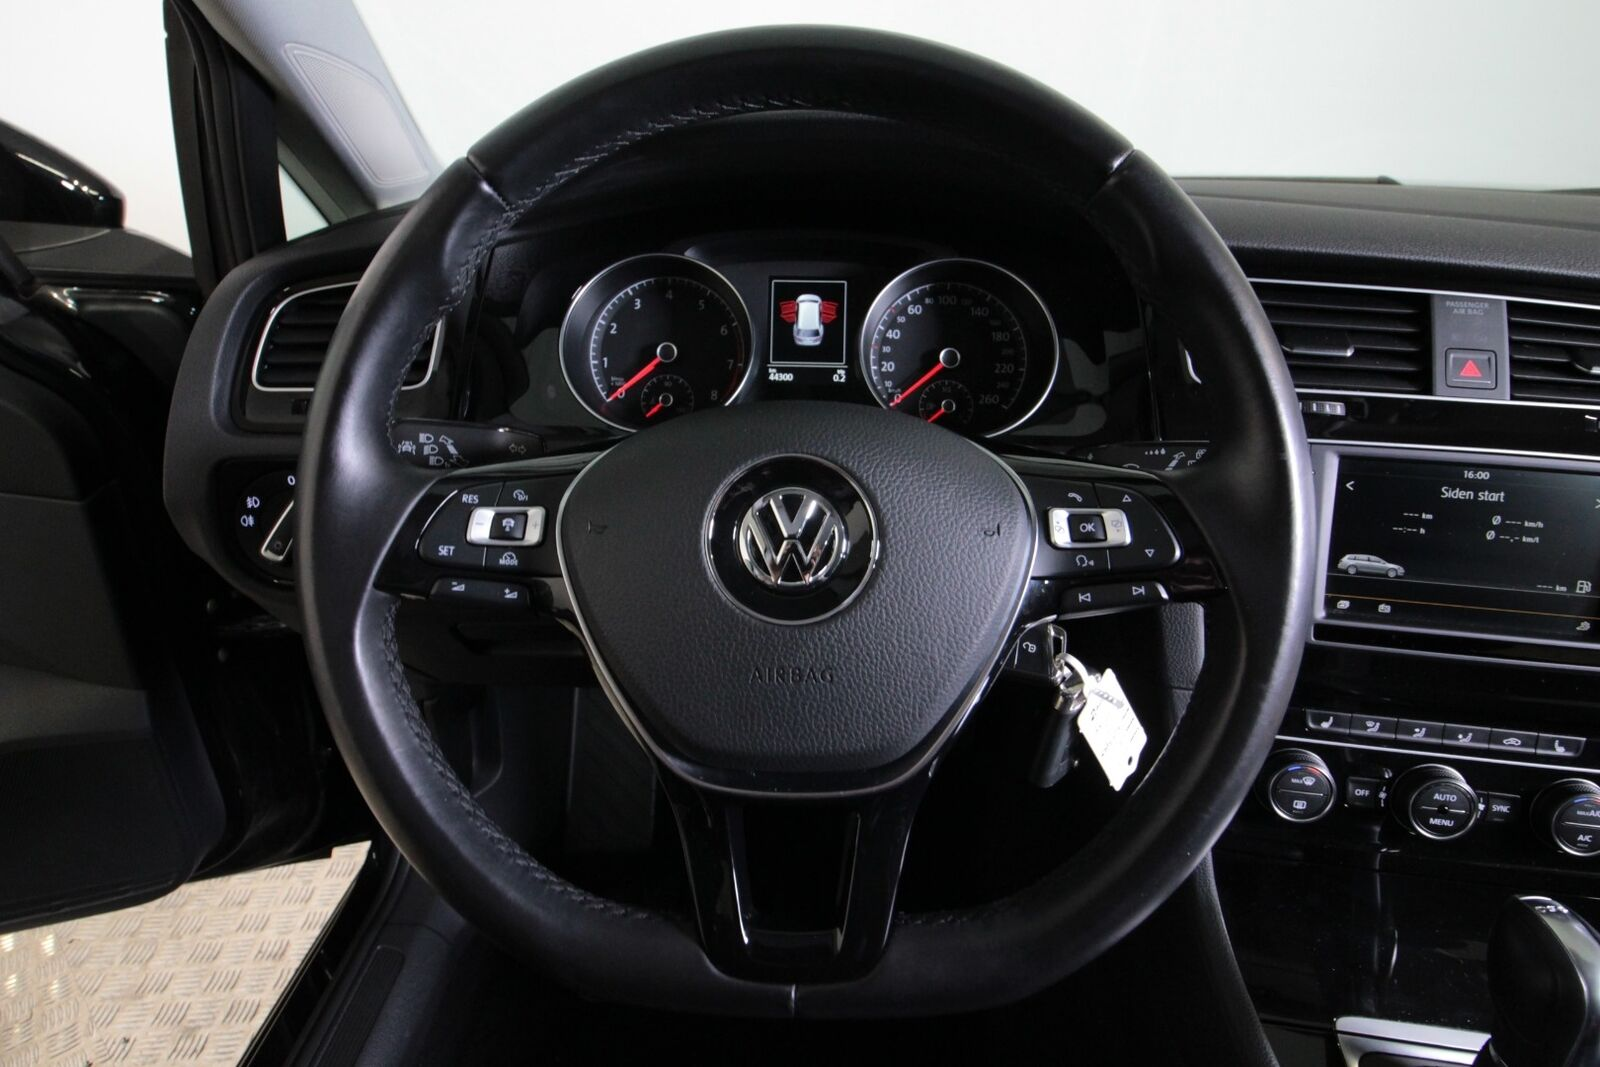 VW Golf VII TSi 150 Highl. Vari. DSG BMT